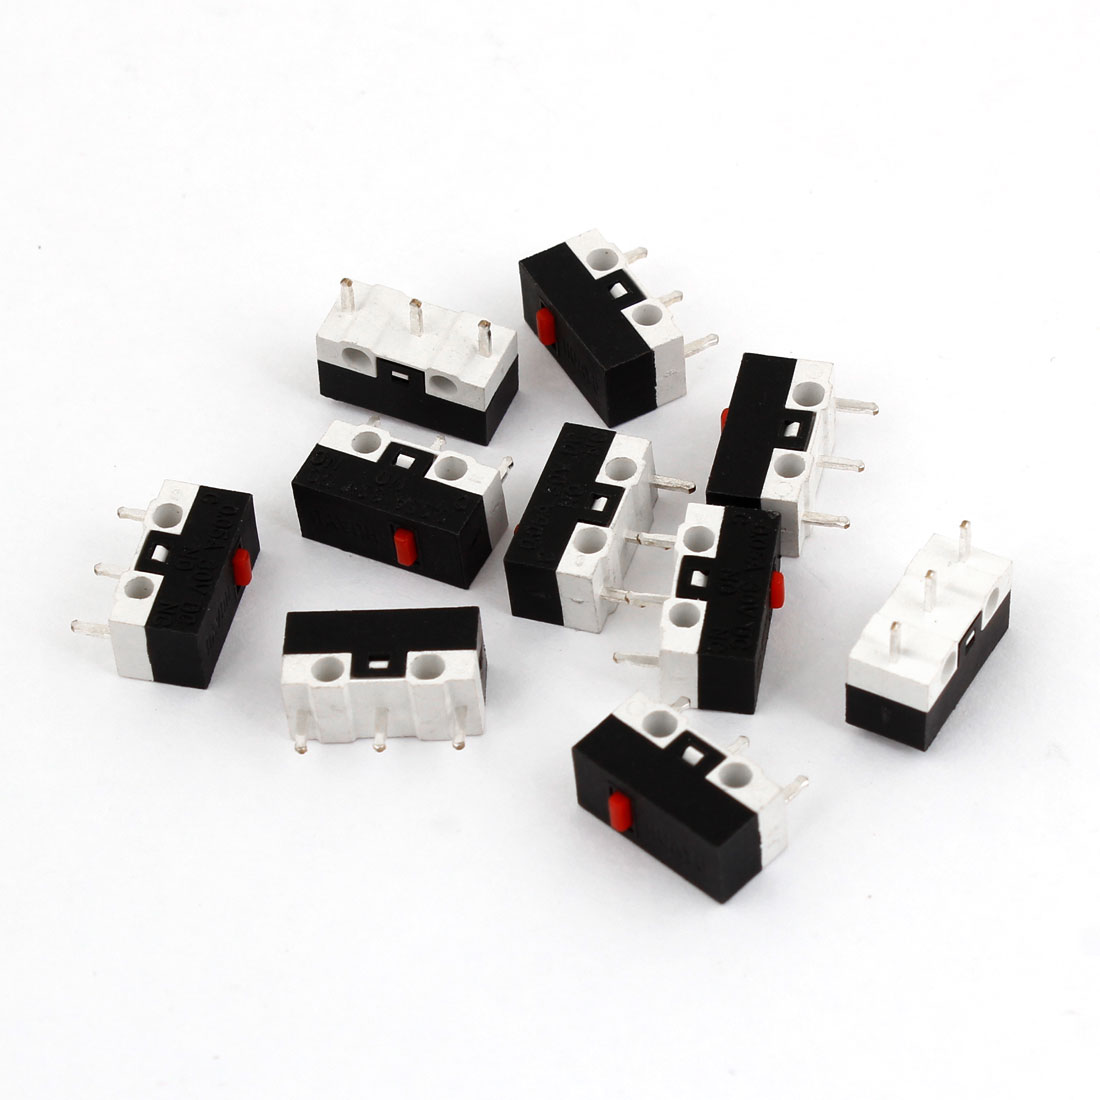 10 Pcs 13 x 6mm 1NO 1NC 3 Pin SPDT Micro Limit Switches DC 30V 0.05A